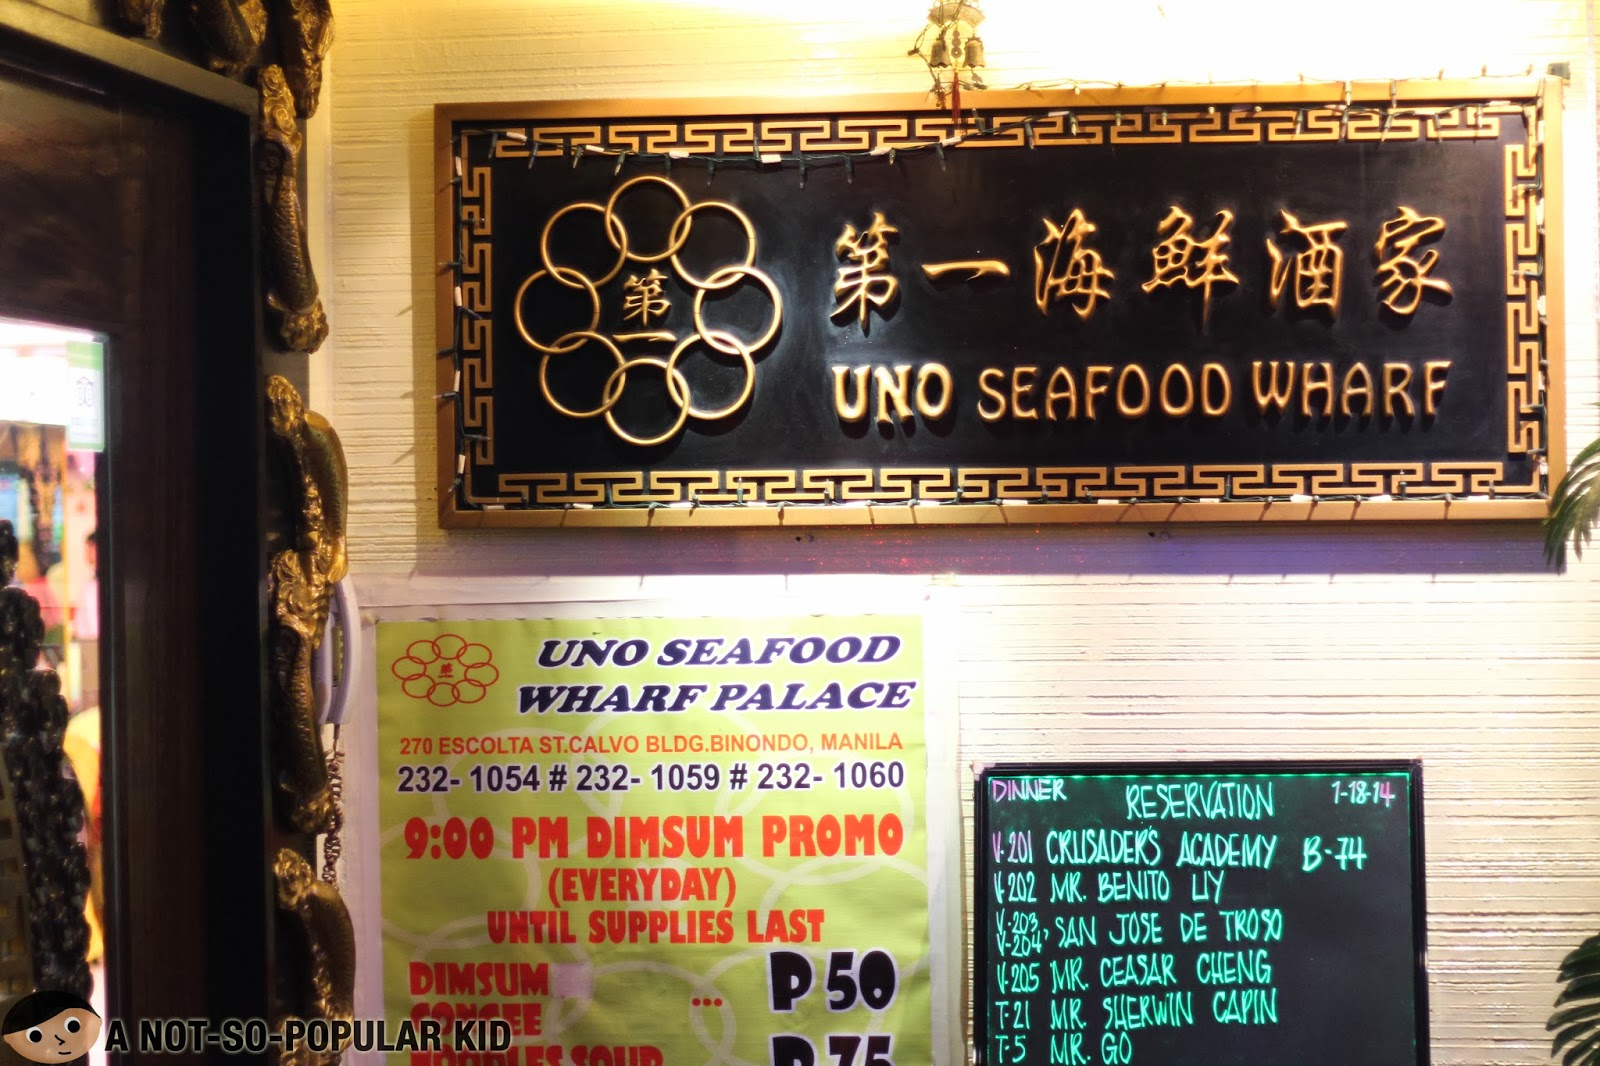 Uno Seafood Wharf Palace in Escolta